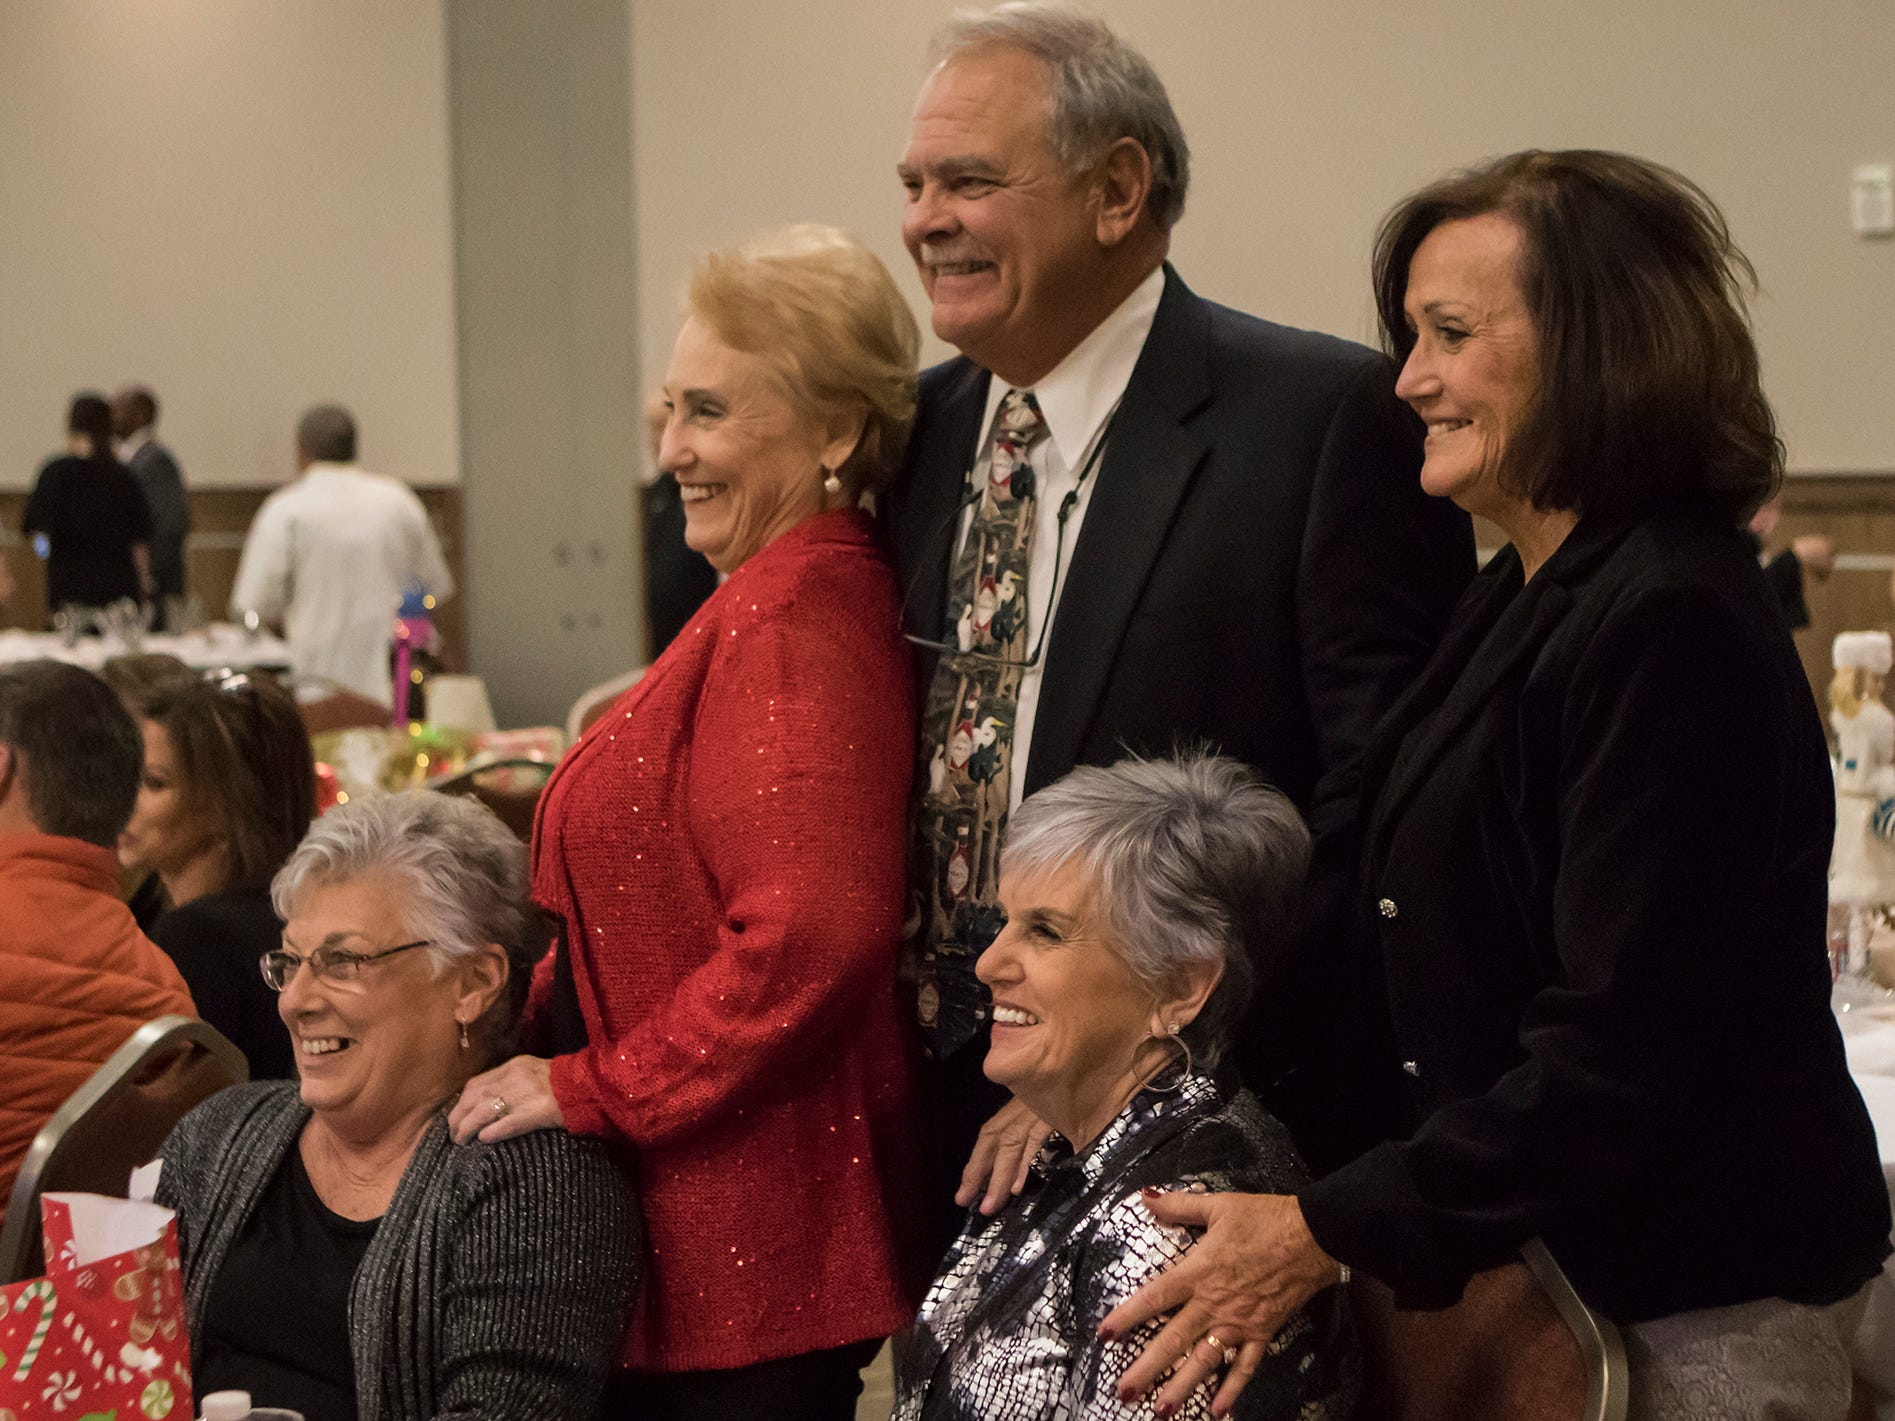 The Monroe City Chamber gathered at University of Louisiana at Monroe's Bayou Pointe for their annual charity auction and gala on Dec. 6 in Monroe, La.